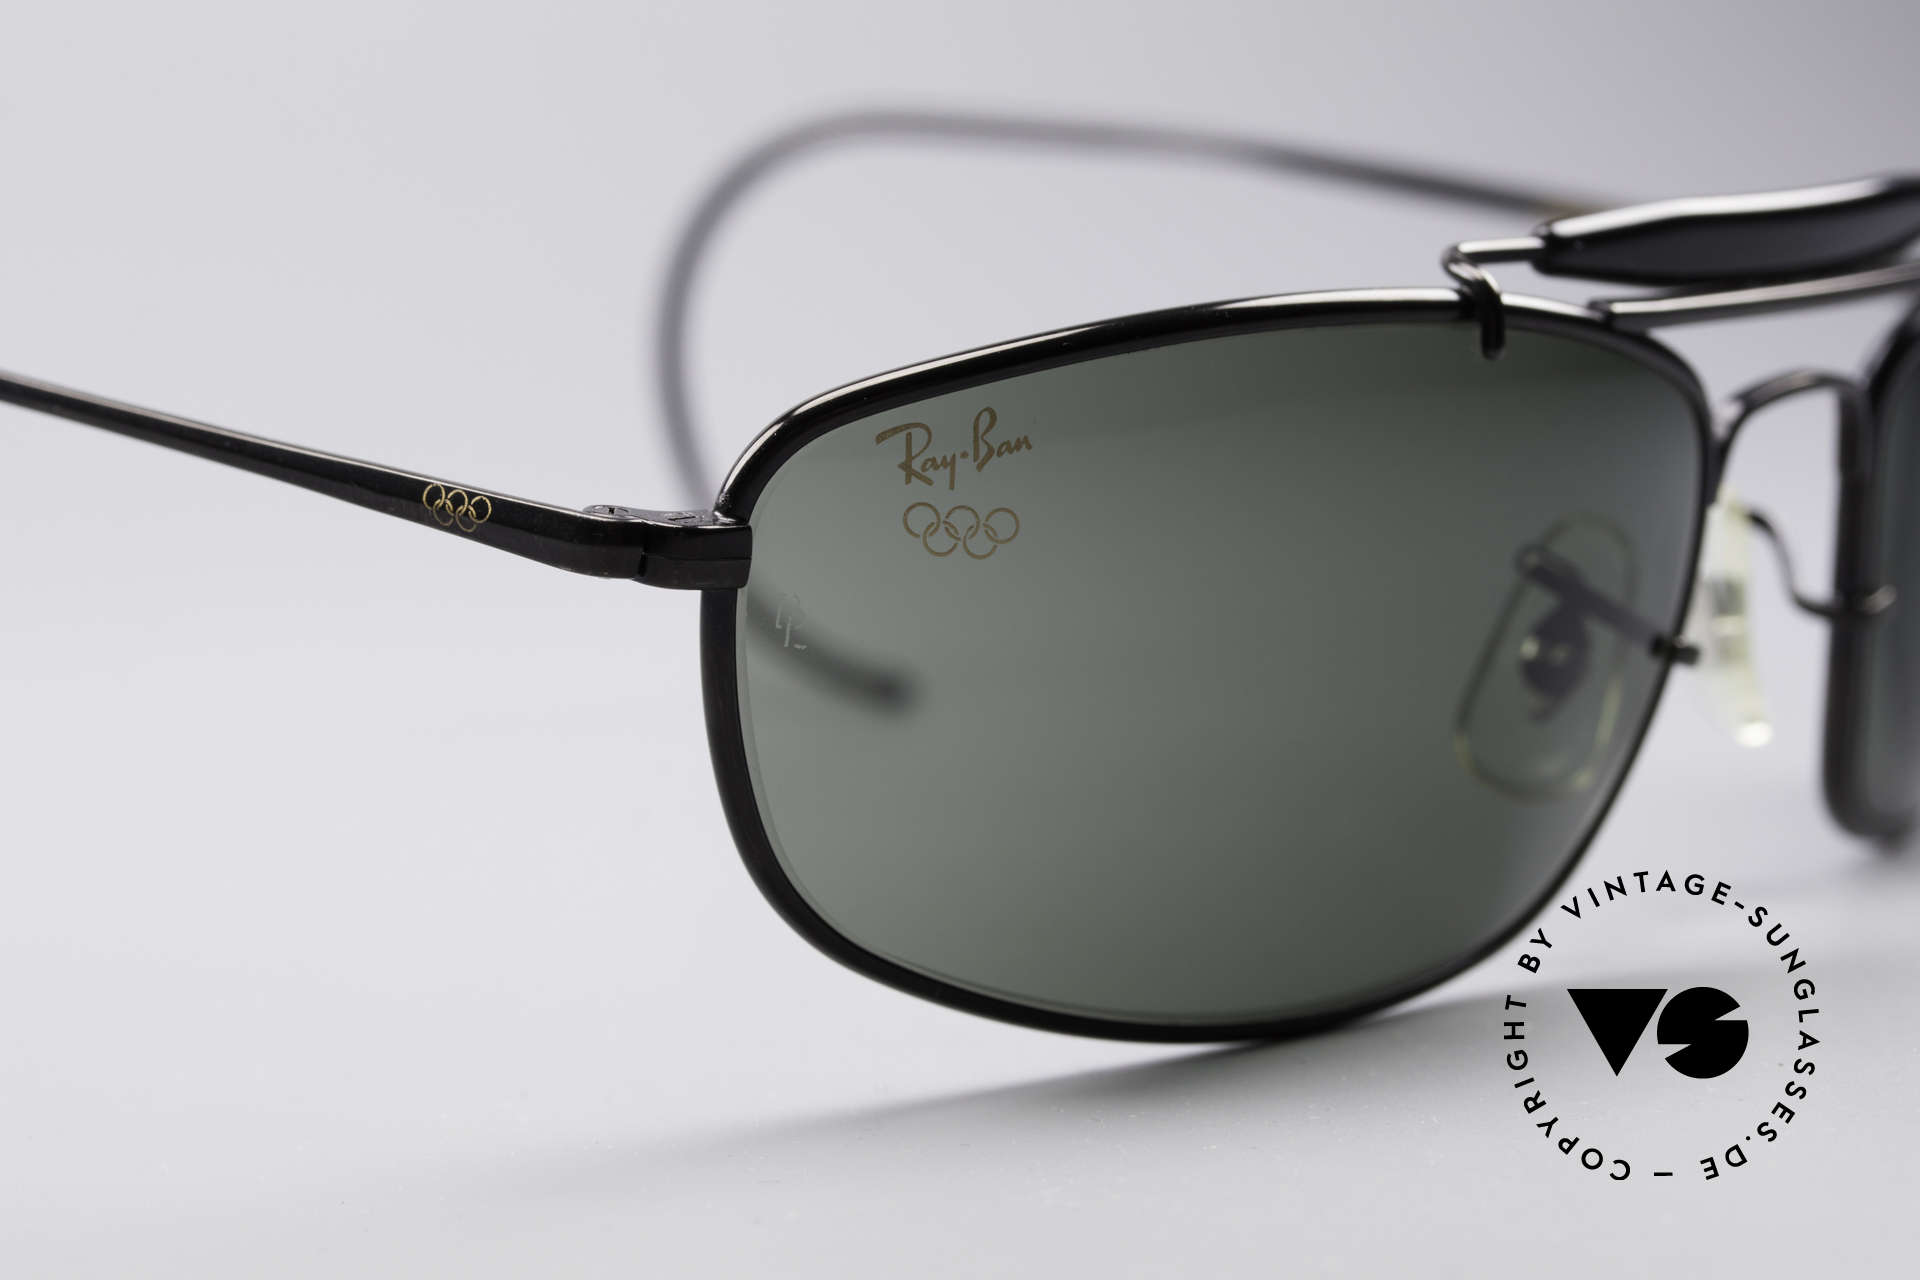 Ray Ban Sport Metal 1994 Olympic Series B&L USA, perfect fit due to flexible sport temples and sports band, Made for Men